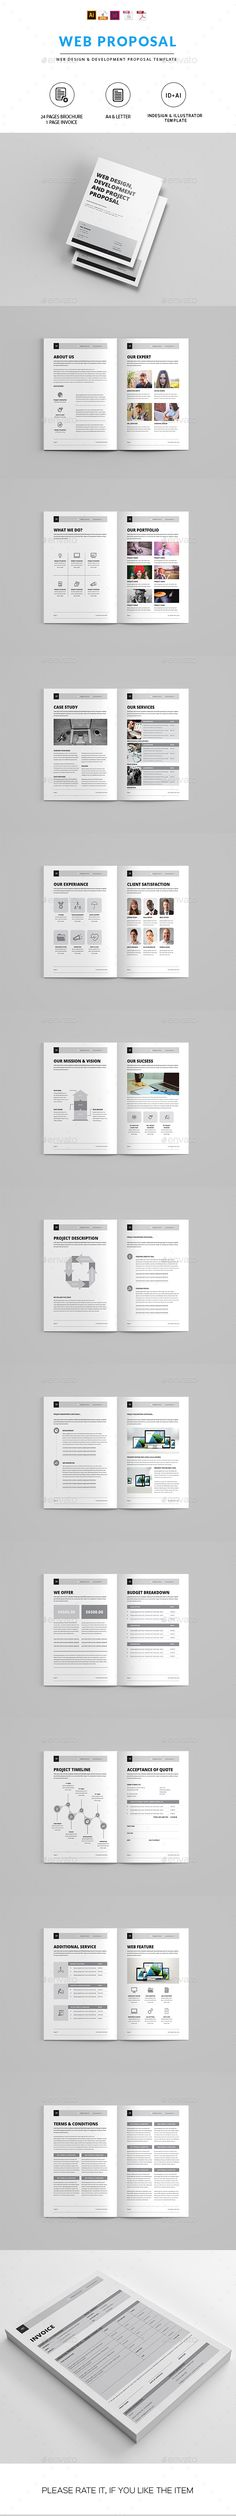 Proposal Discover more ideas about Proposals and Proposal templates - web design proposal template